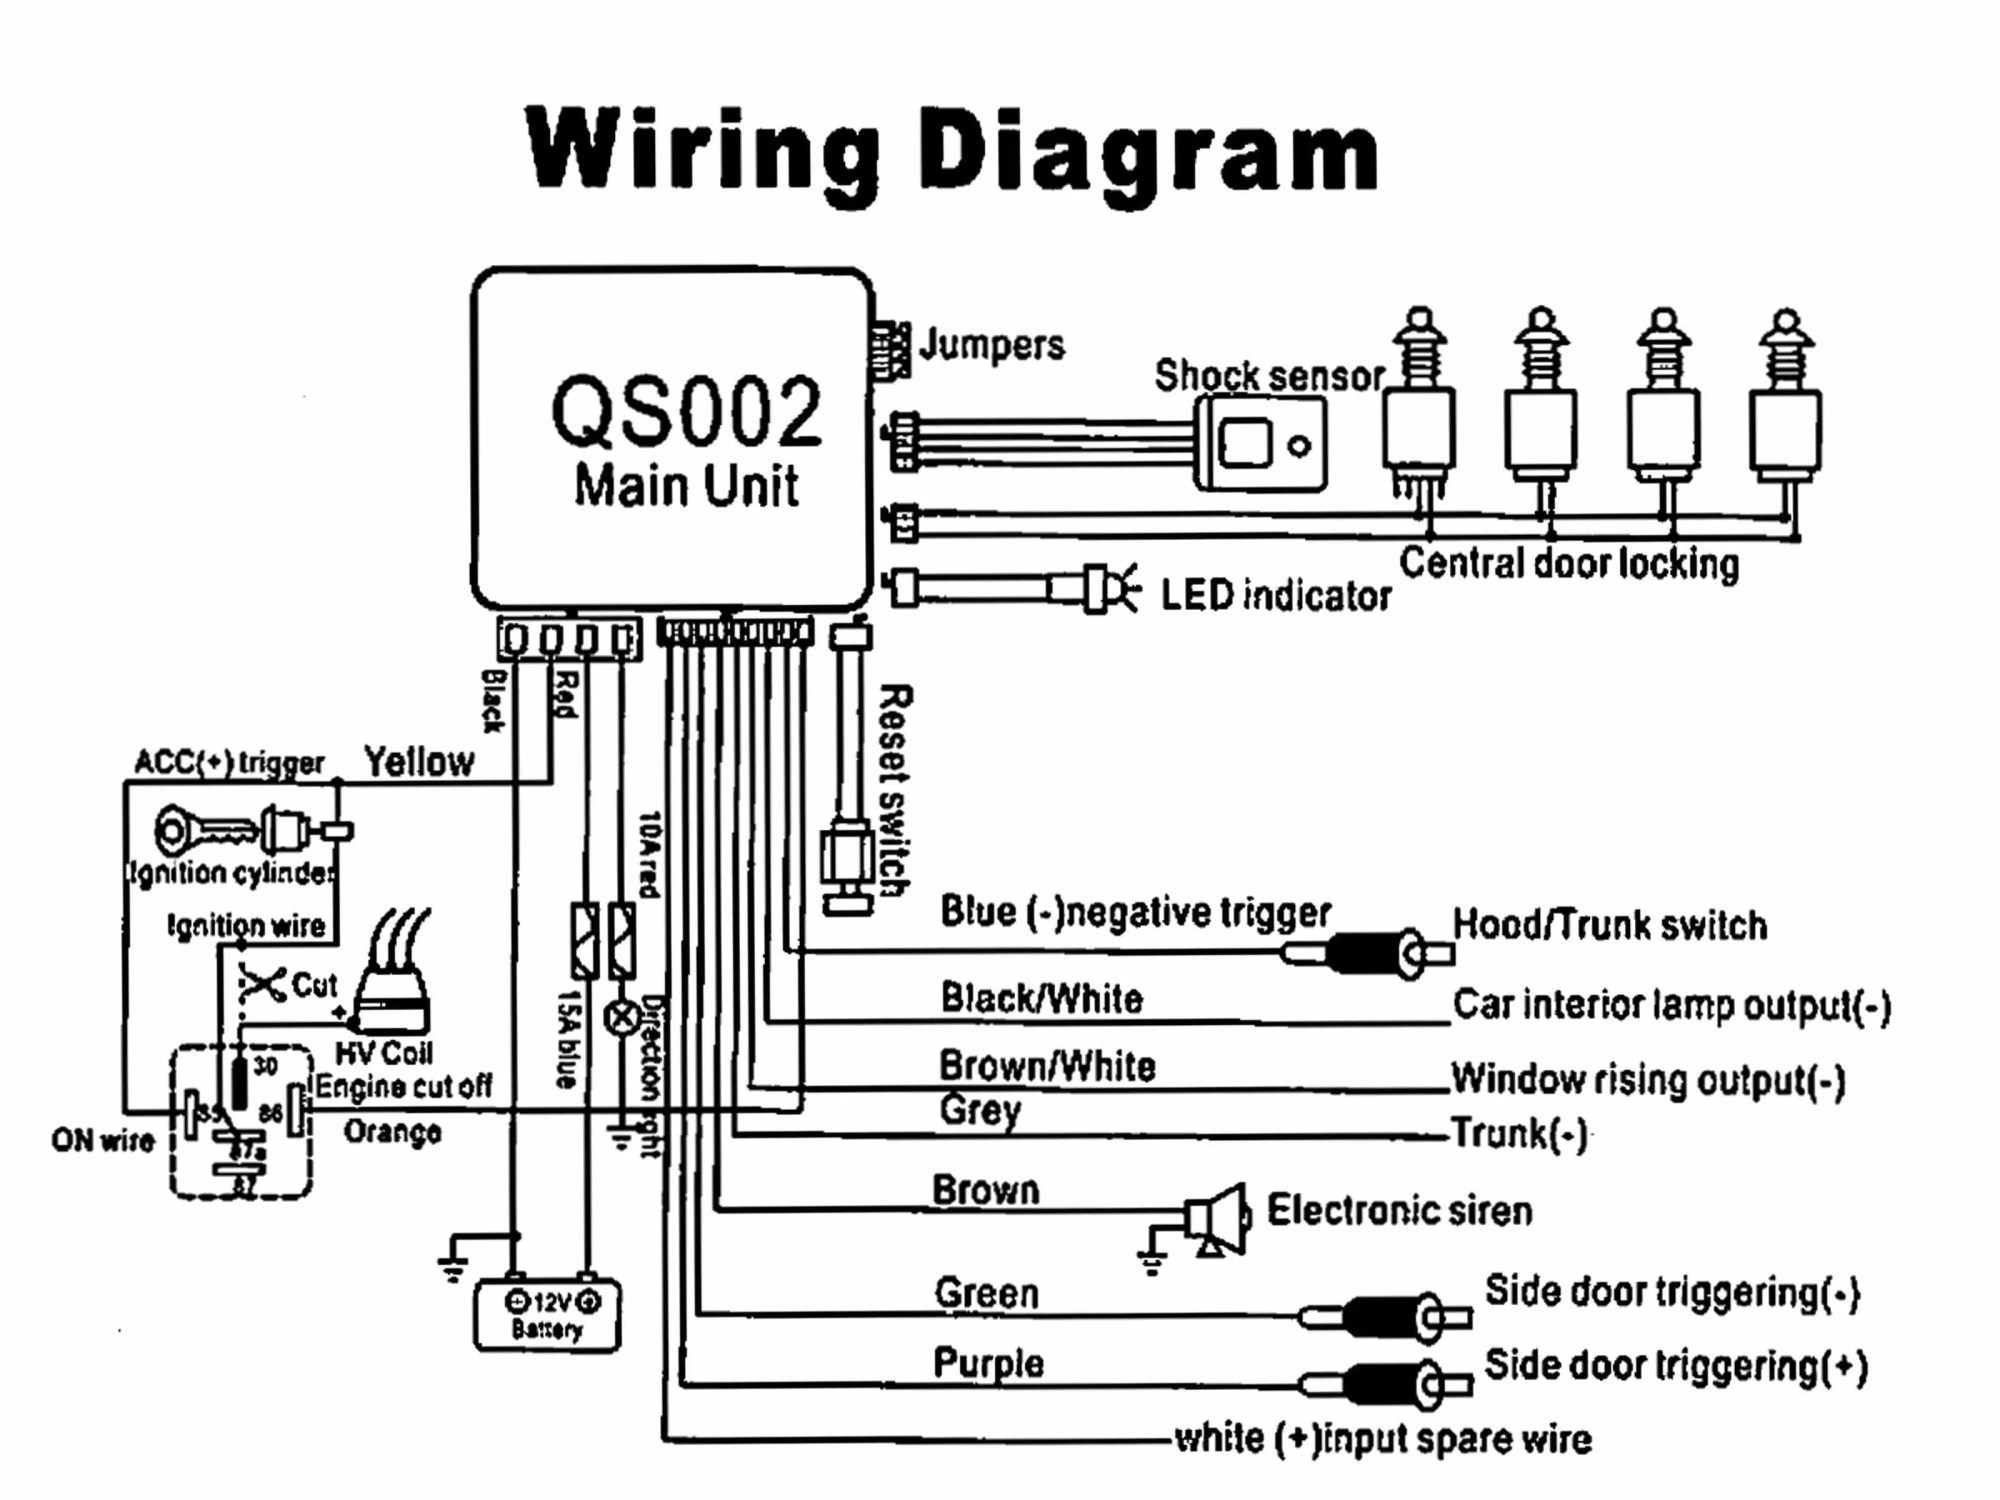 hight resolution of  alarminstructions 7a98a2bc d189 4c5b 99b3 c774abdbef28 stebel horn wiring diagram dolgular com stebel horn wiring diagram at